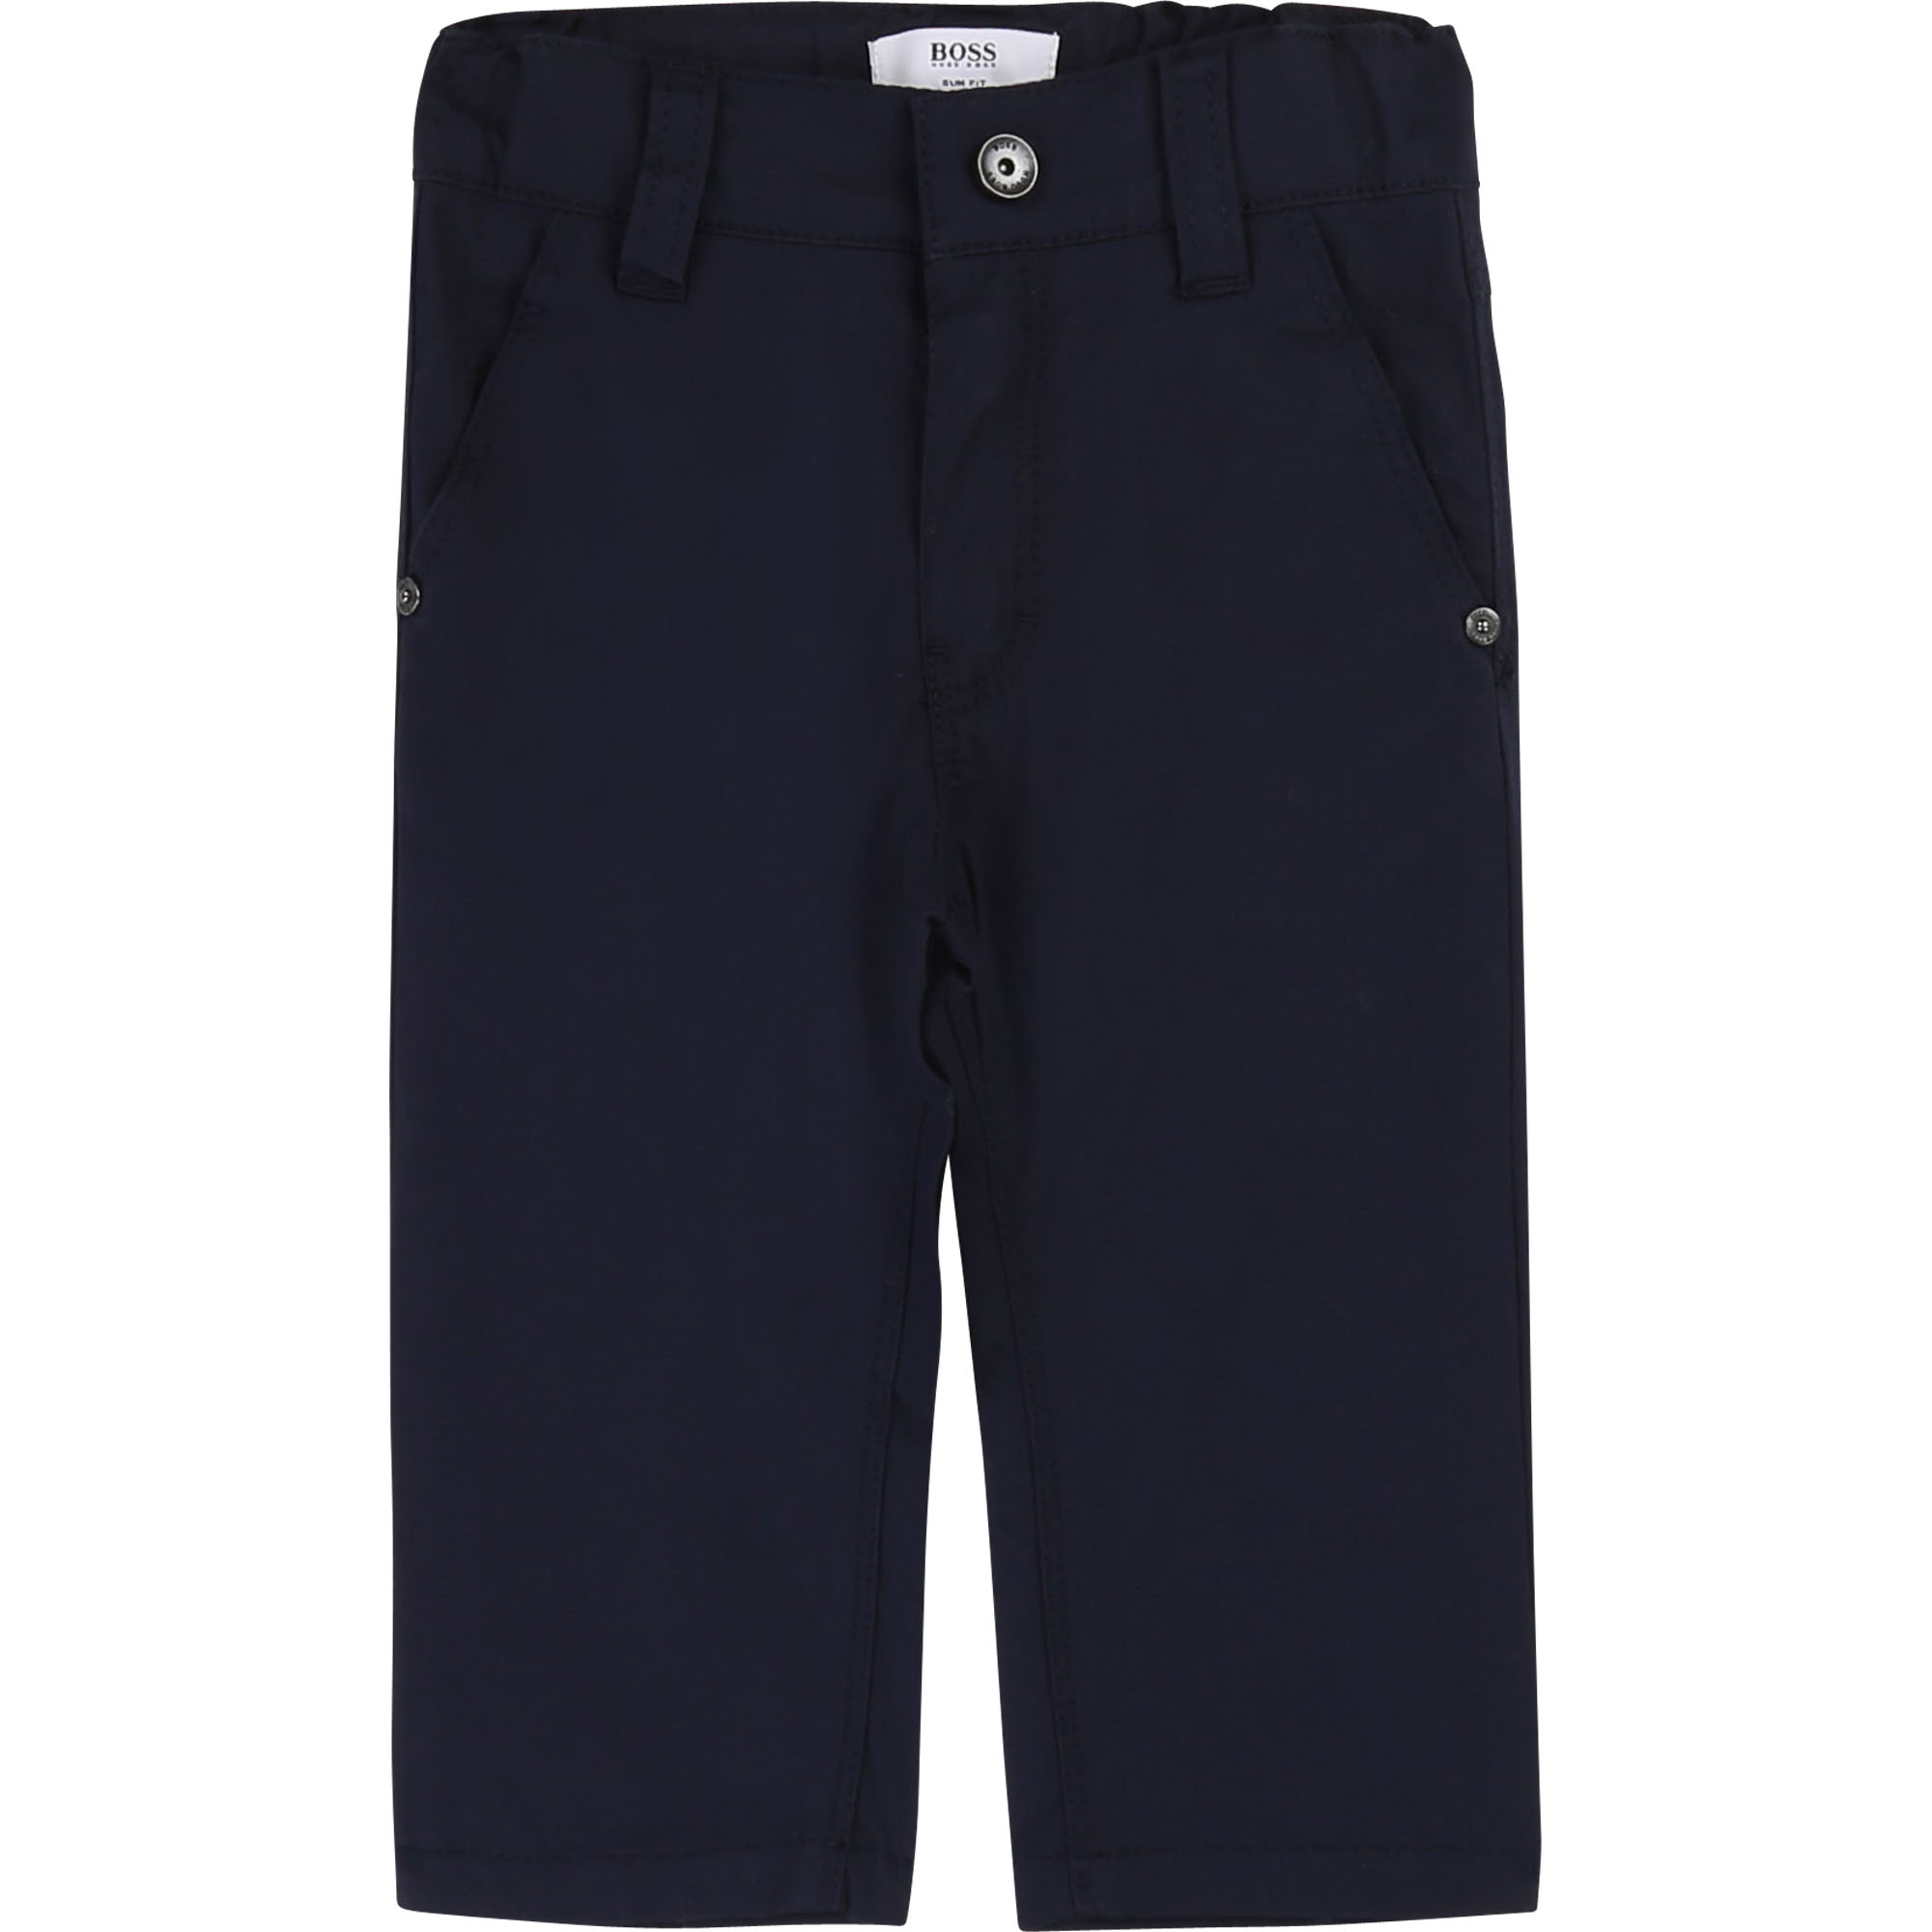 TROUSERS BOSS for BOY